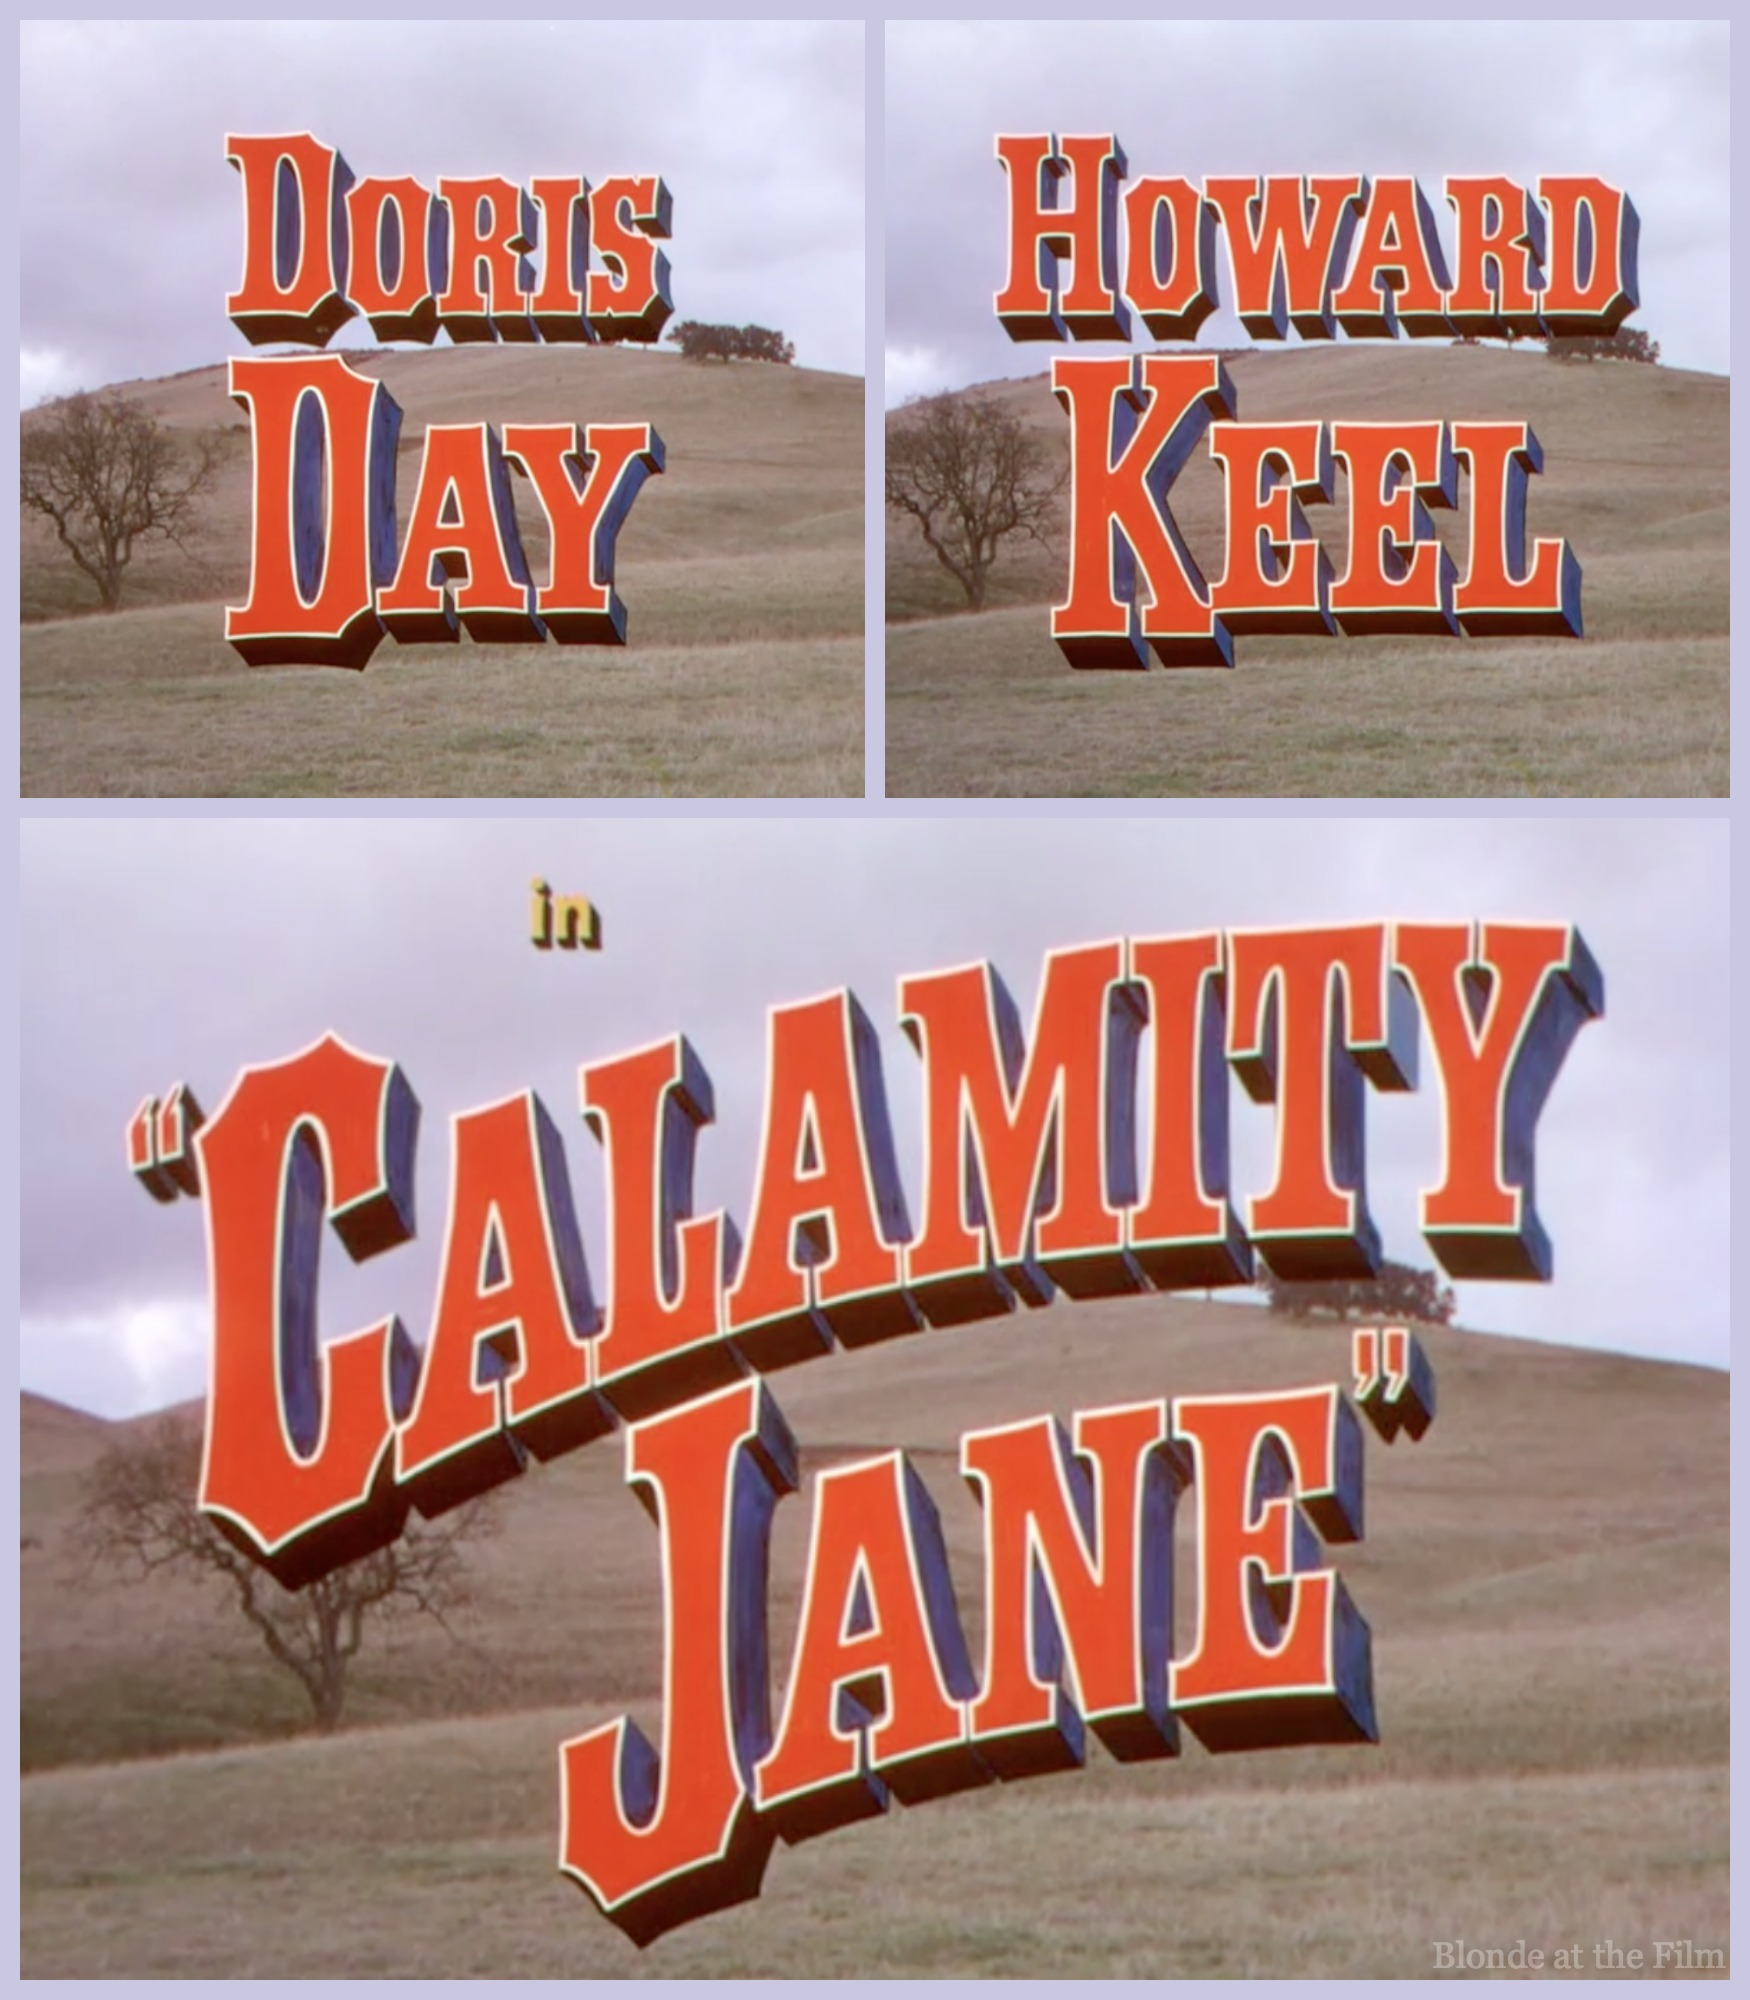 Watch Calamity Jane 1953 full movie online or download